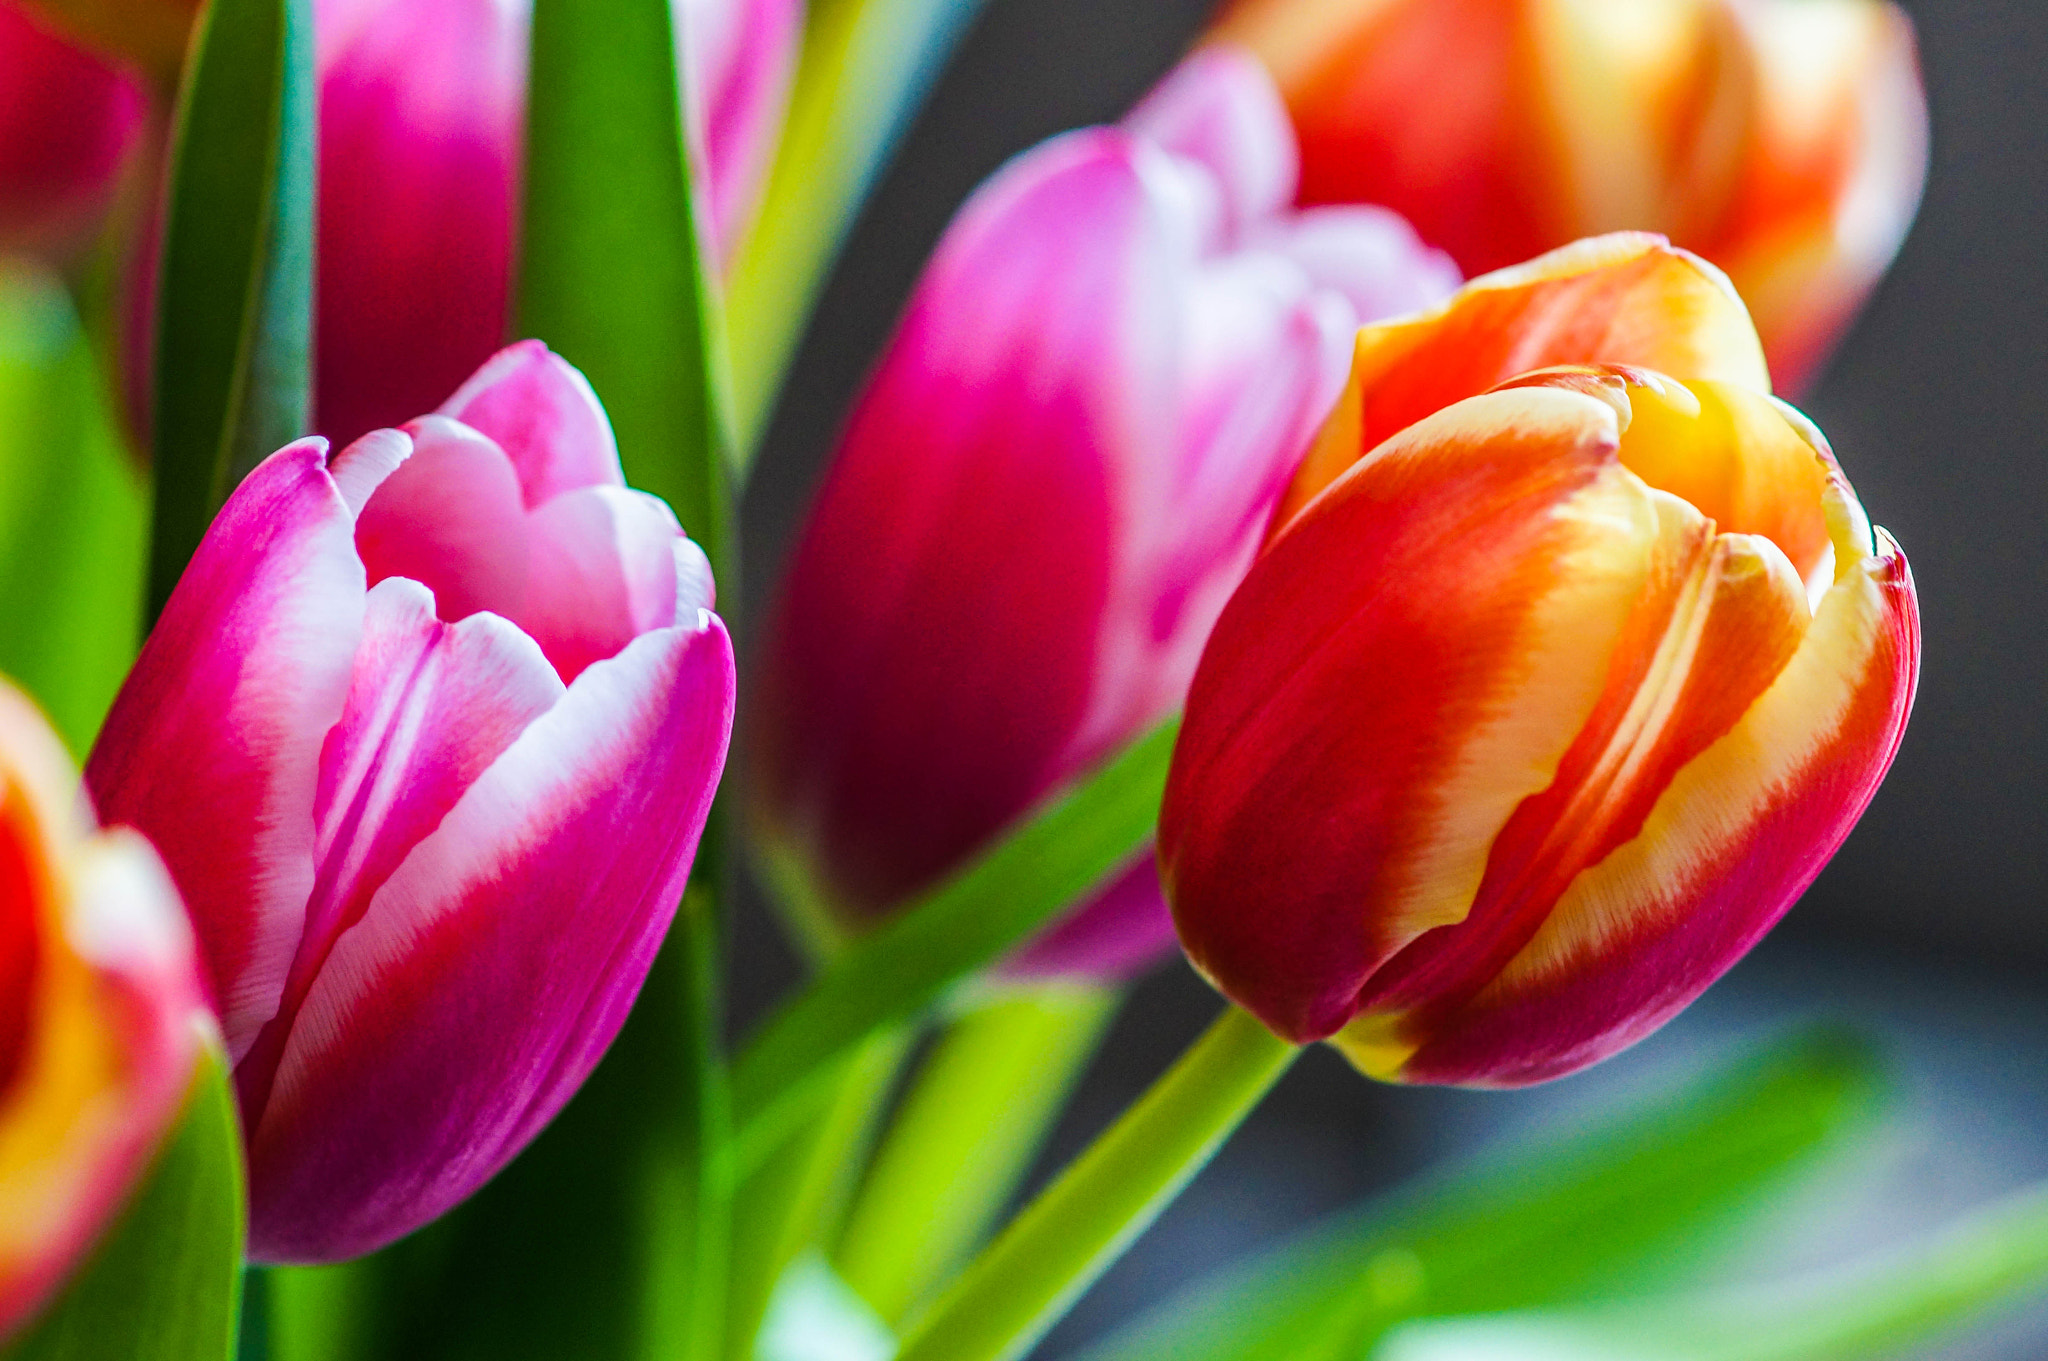 Photograph Spring is Here by Alyssa Paraggio on 500px